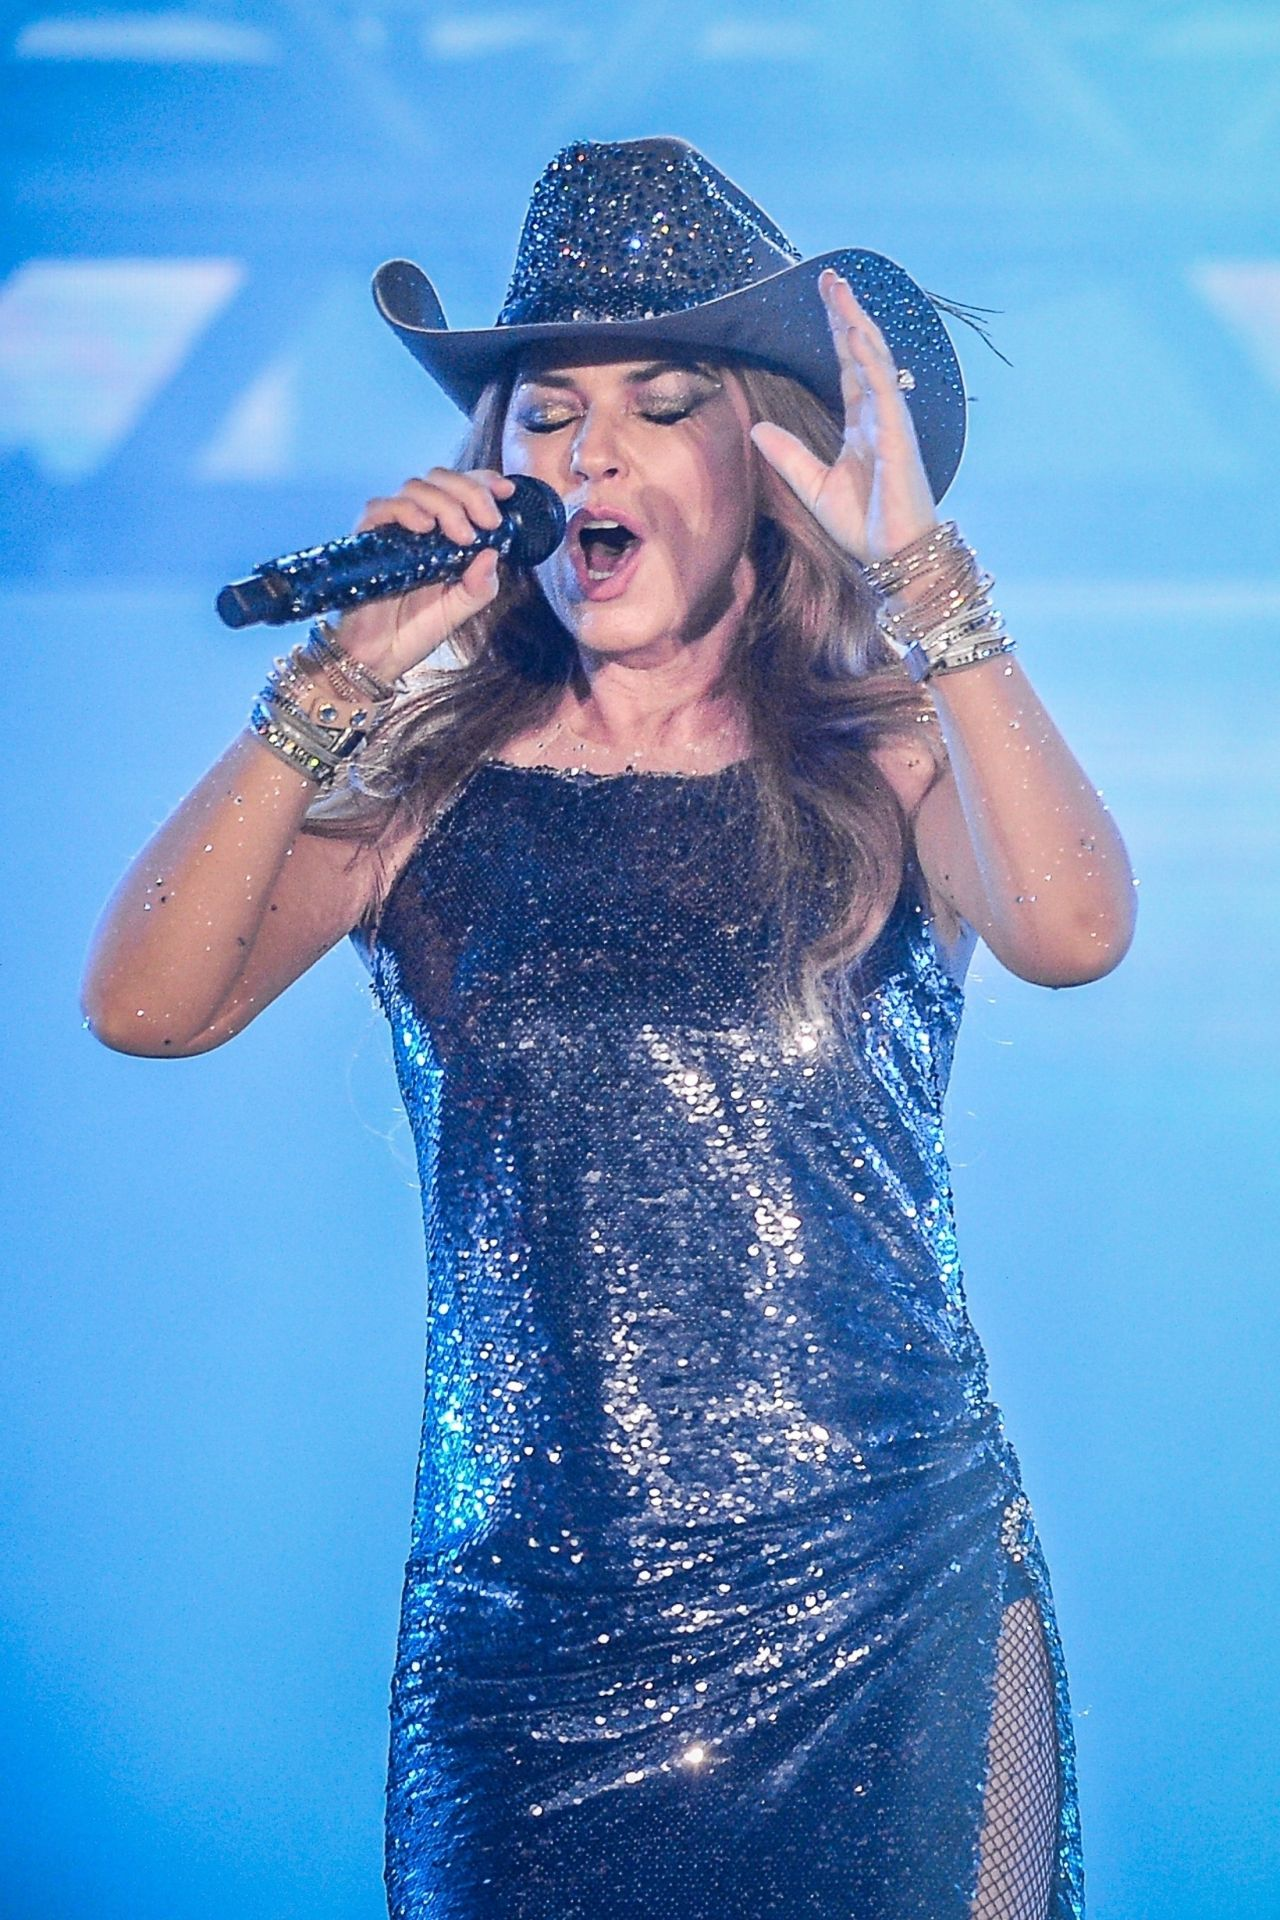 Shania Twain Performs At The Cowboy Festival Of Barretos